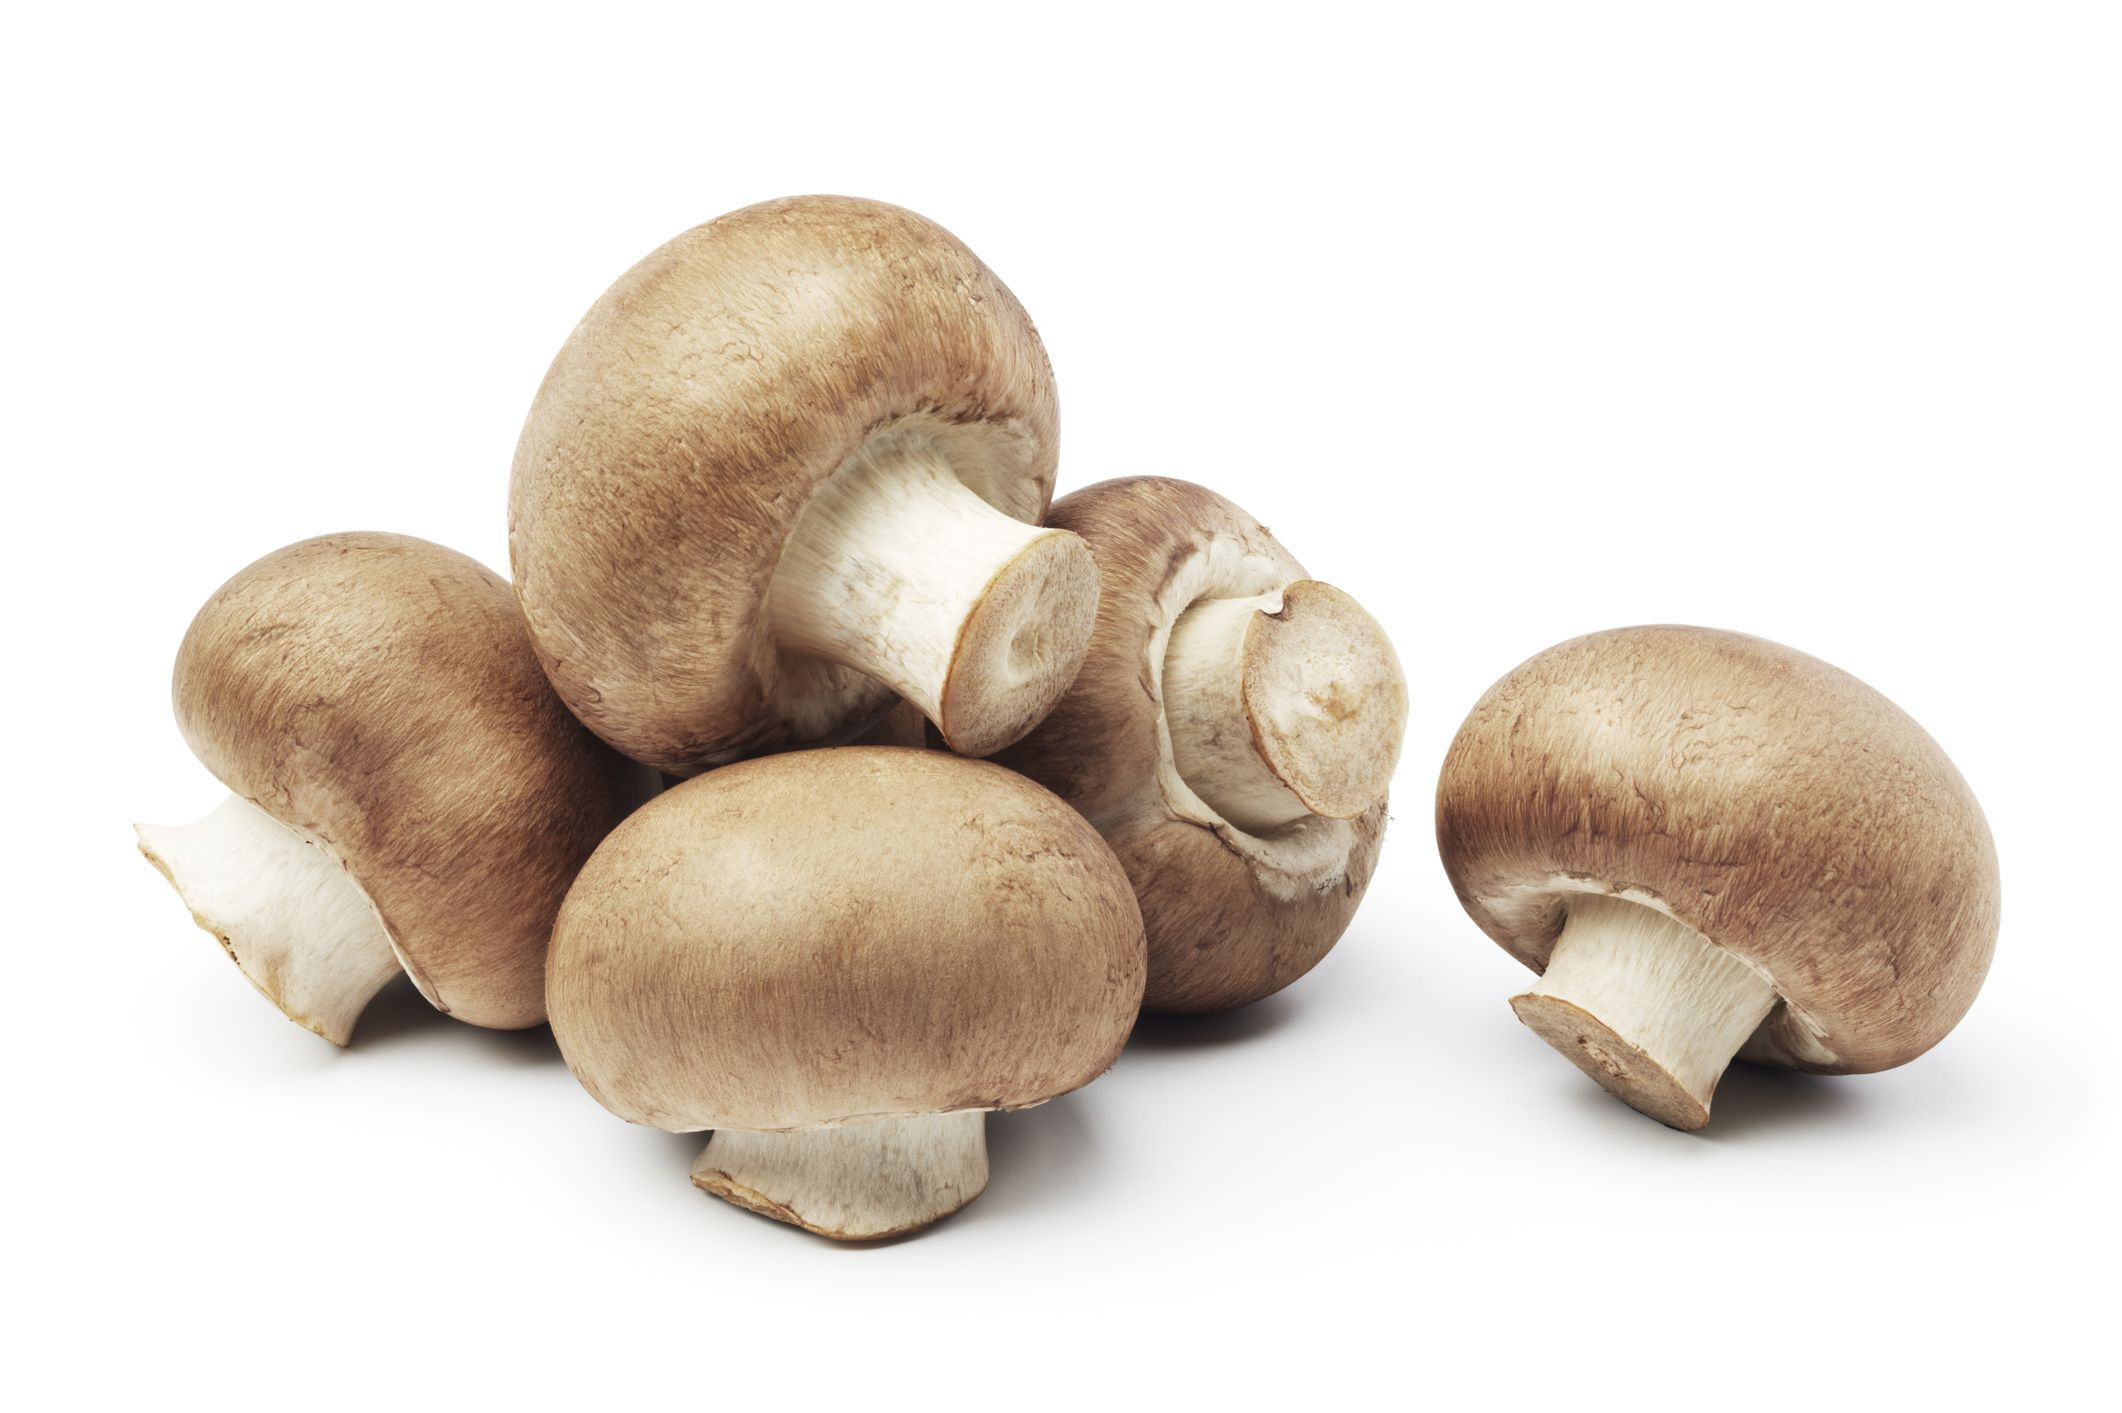 Japanese Researchers Suggest Eating Mushrooms May Reduce Prostate Cancer Risk